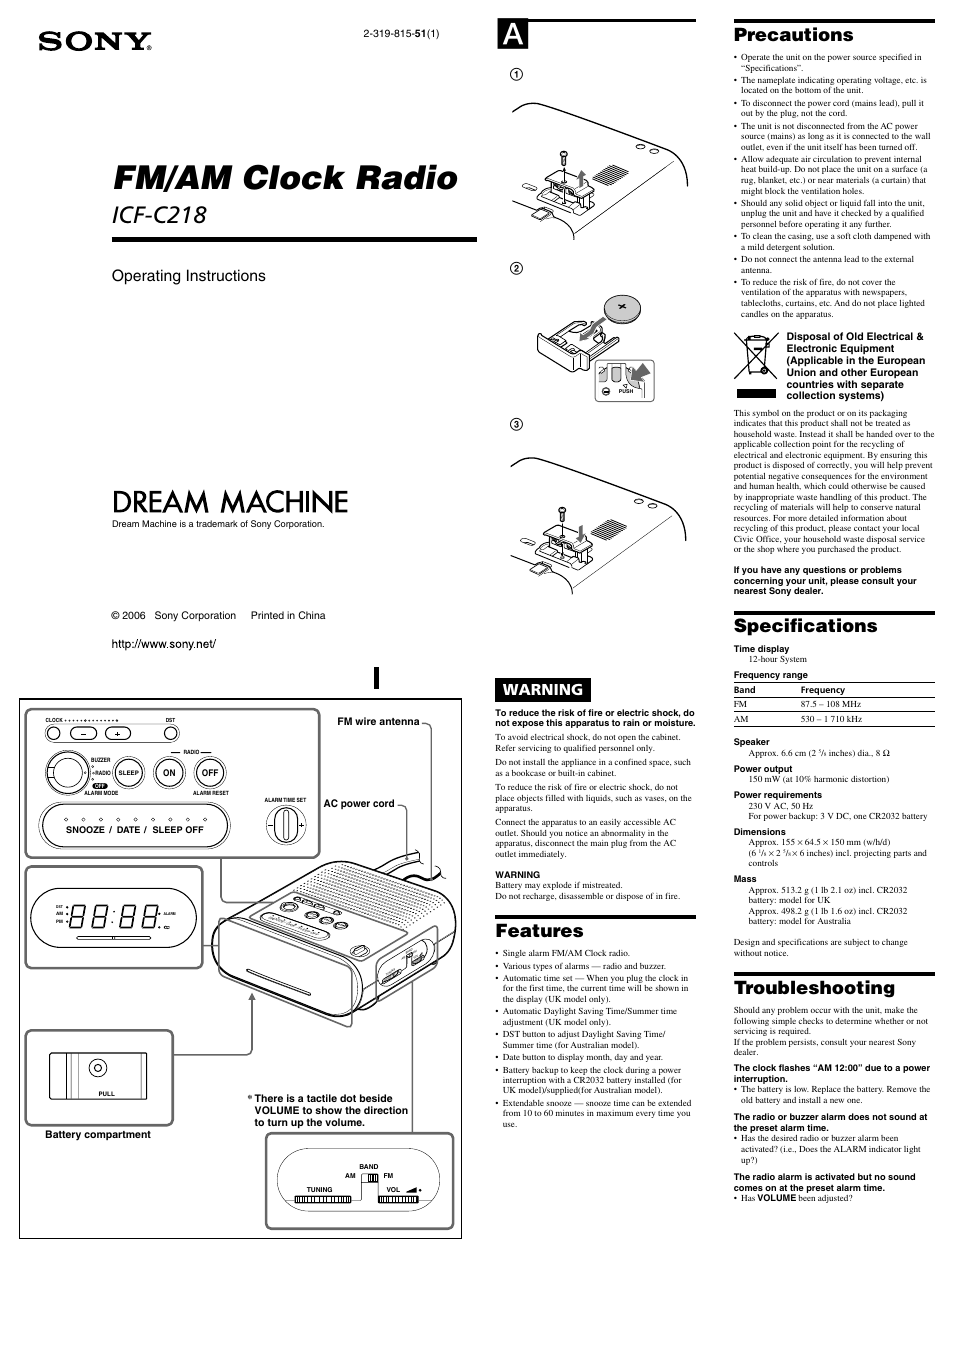 sony icf c218 user manual 2 pages also for dream machine icf c218 rh manualsdir com sony dream machine icf-c218 instructions sony dream machine auto time set icf c218 manual